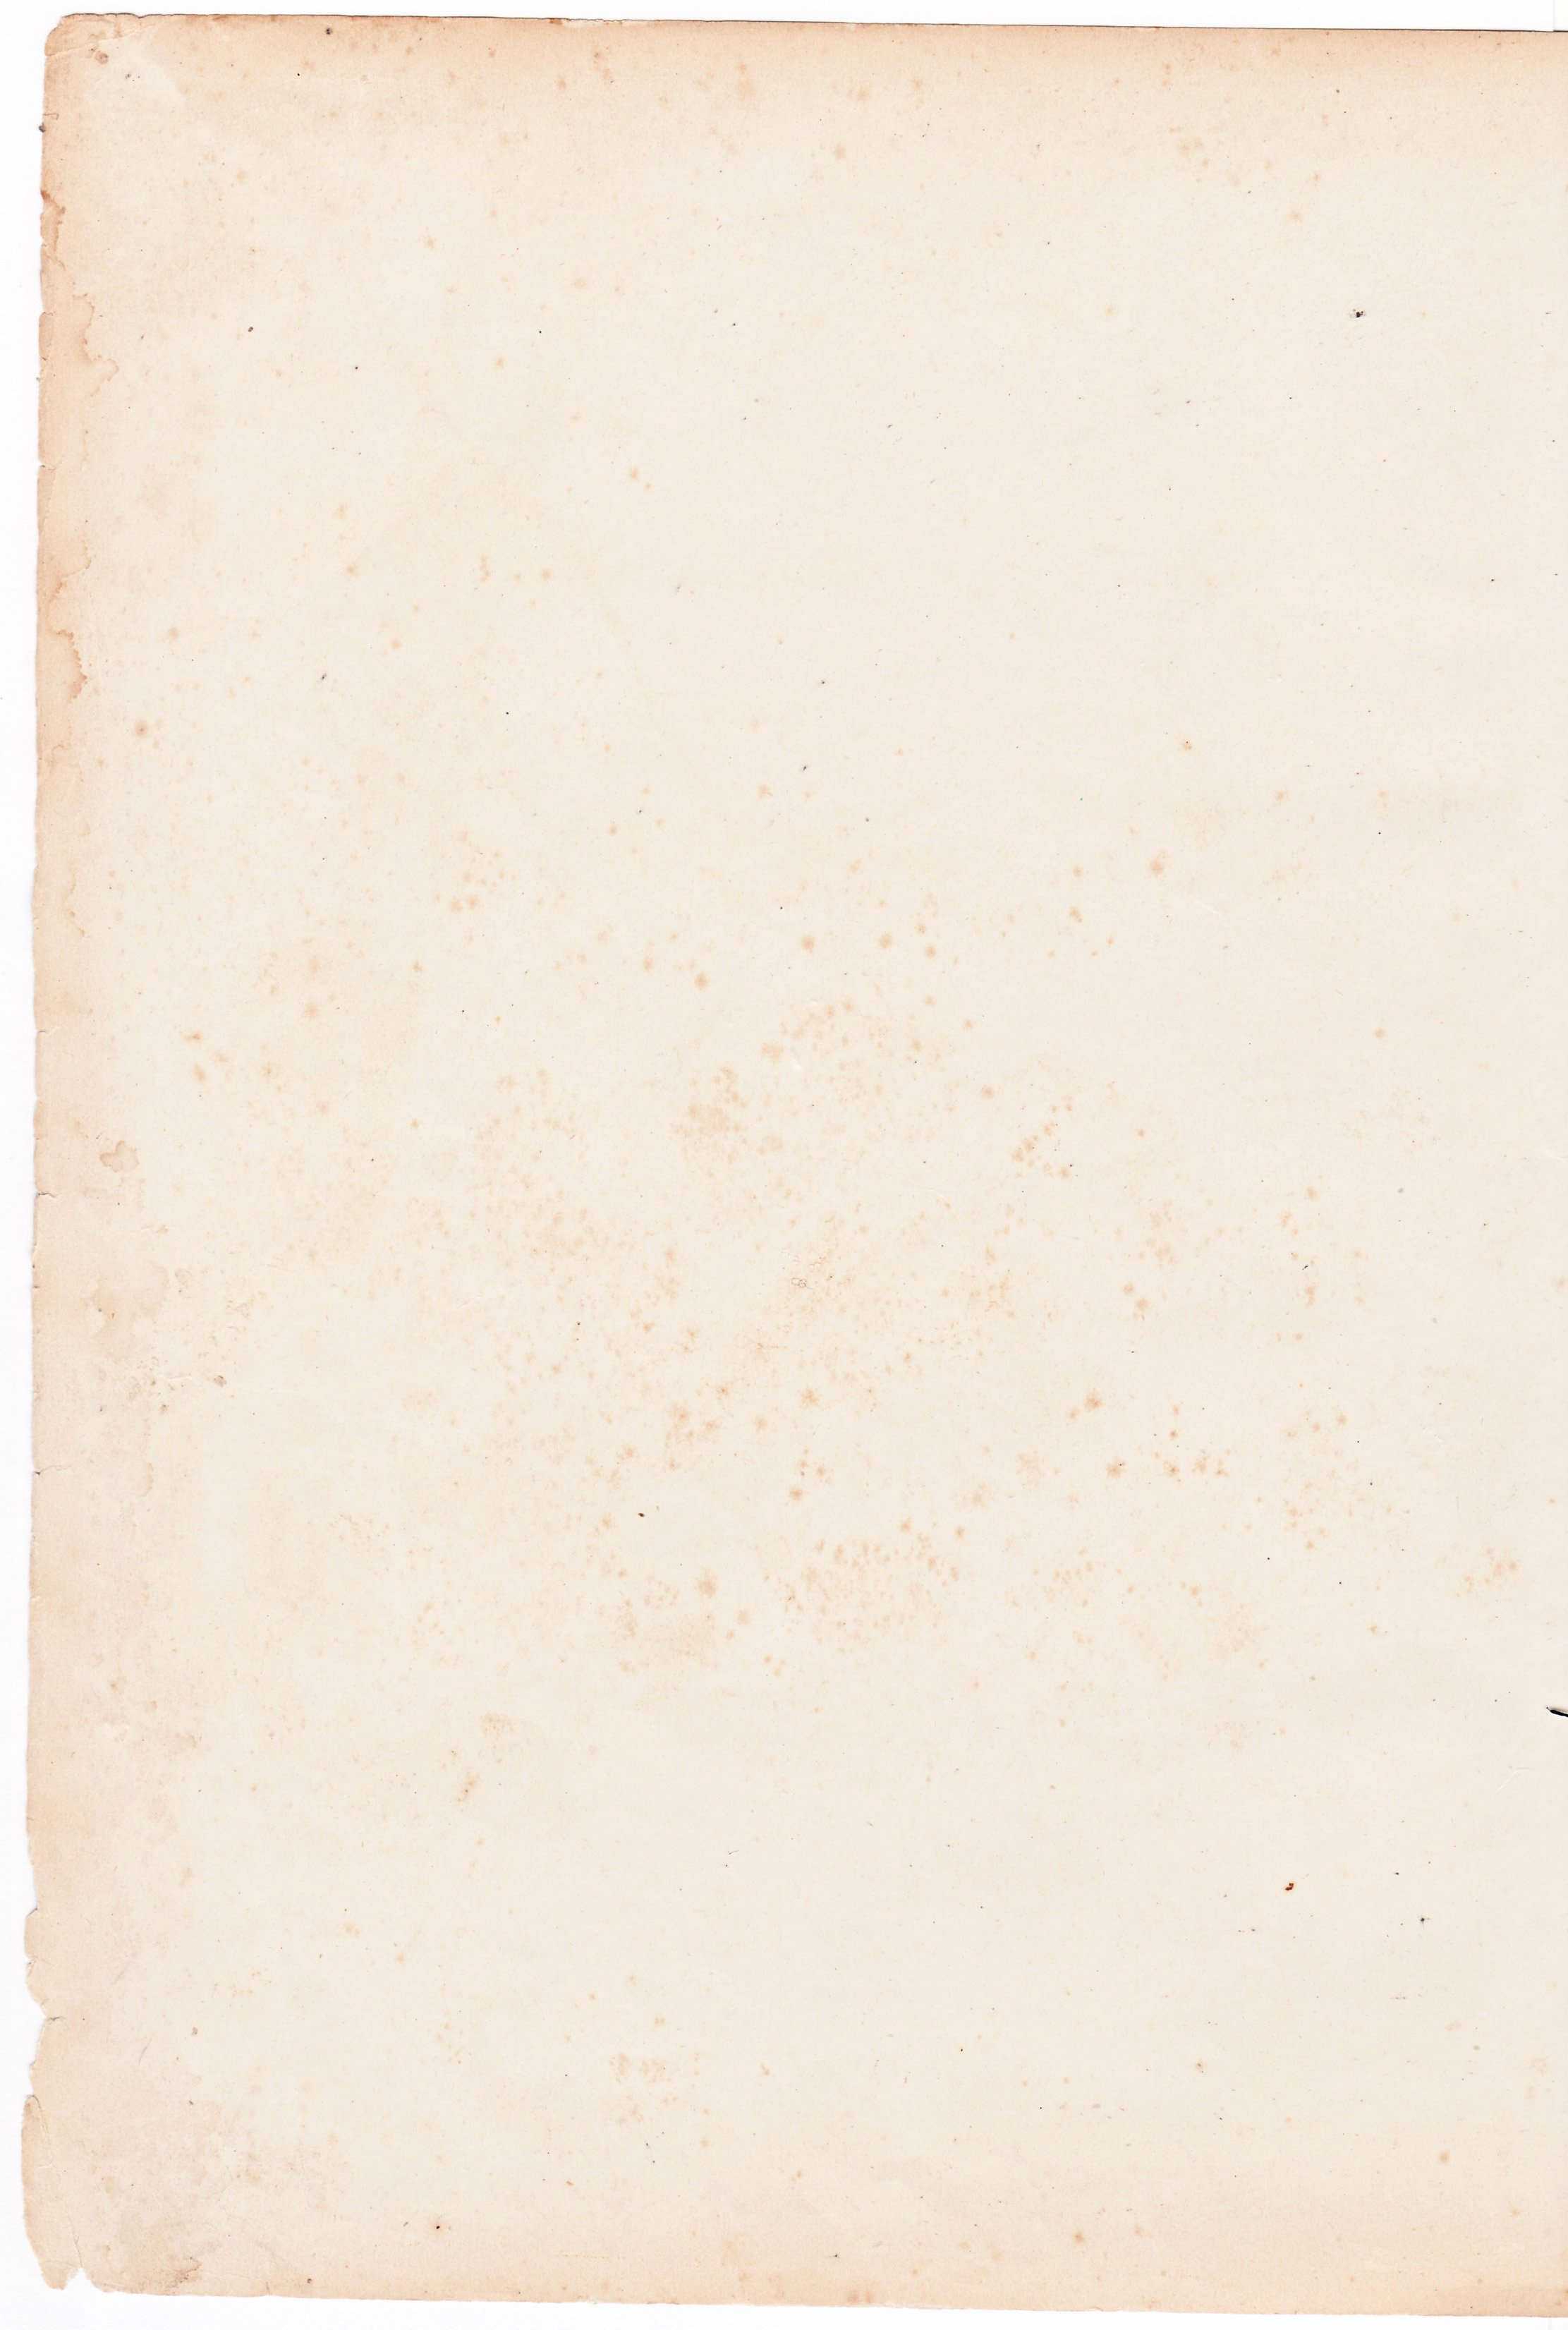 10 free high resolution paper textures